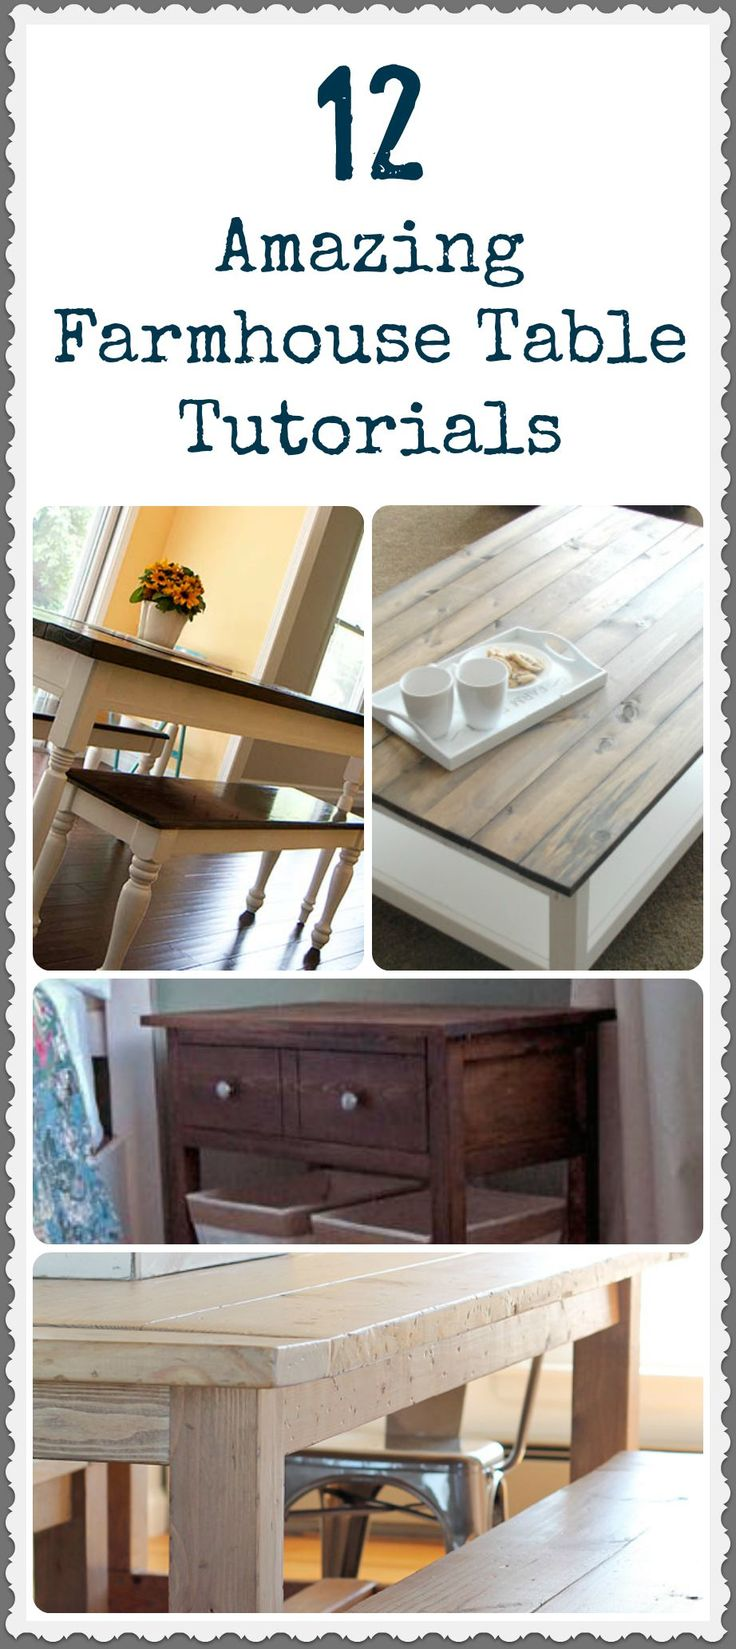 best diy projects images on pinterest atelier carpentry and